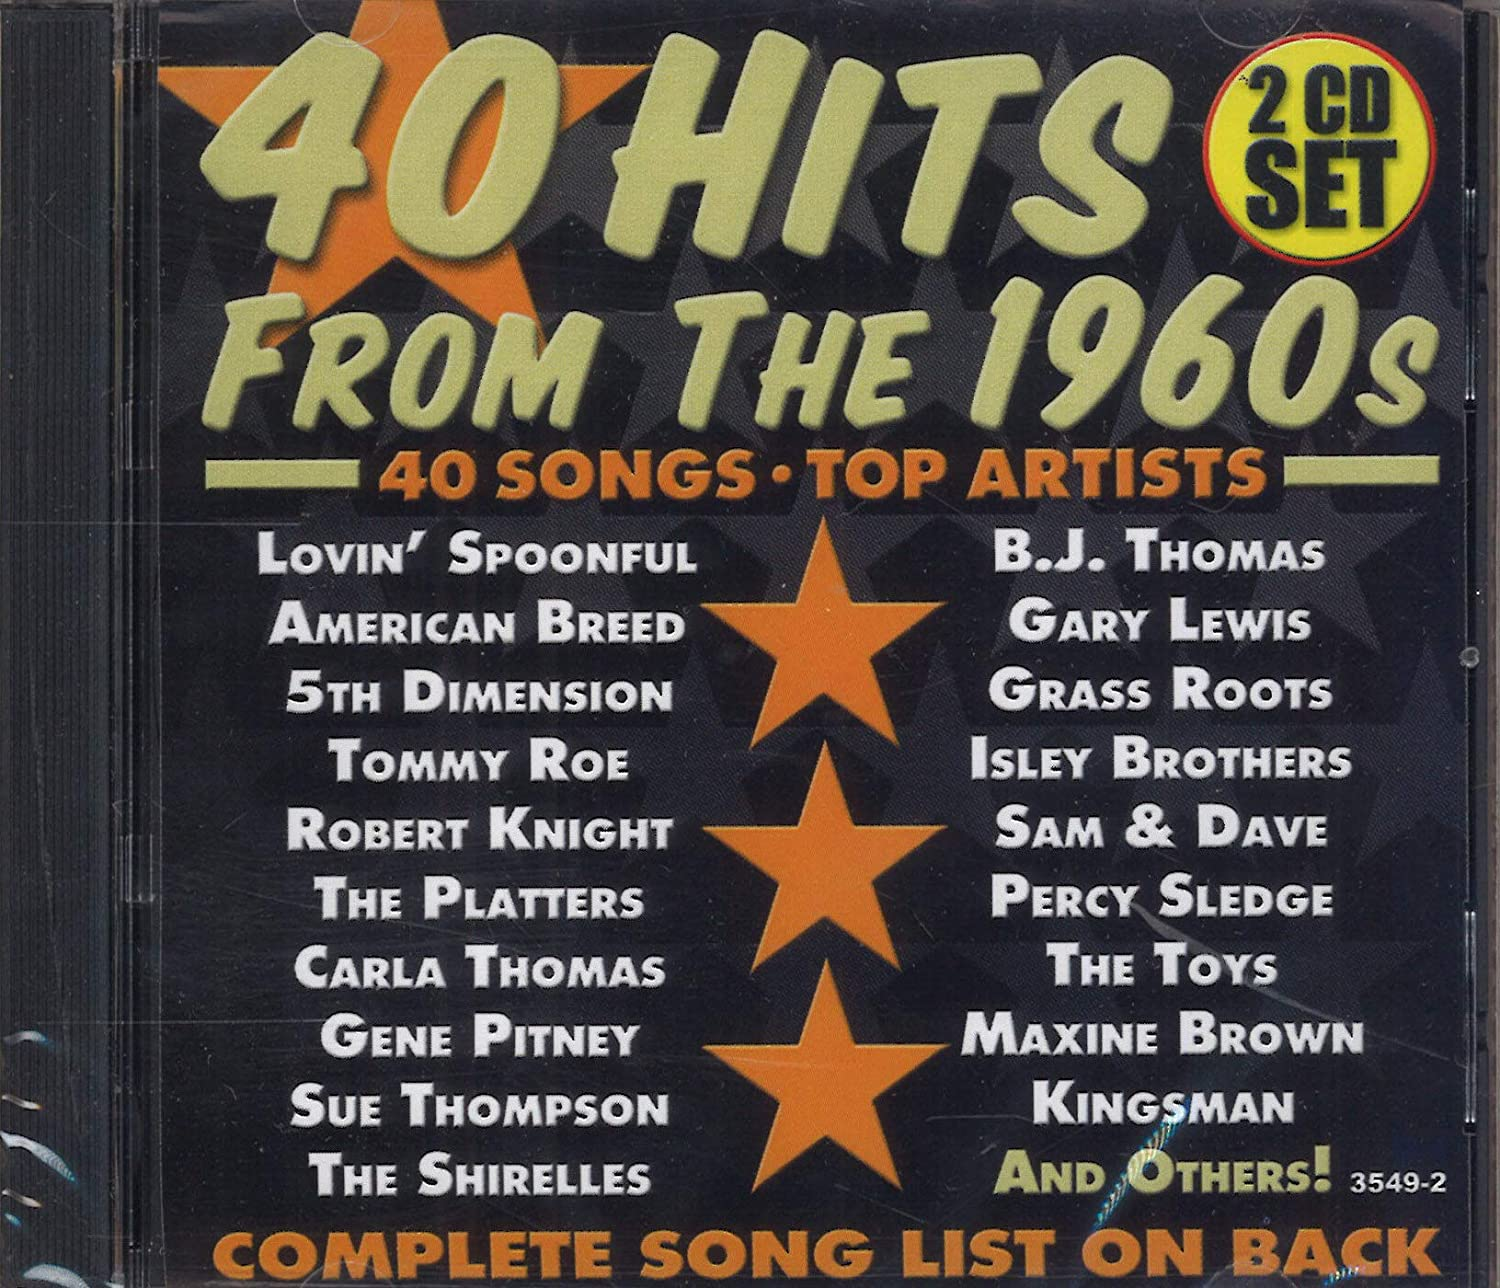 Various Artists - 40 Hits From The 1960s: 2 CD Set - Amazon